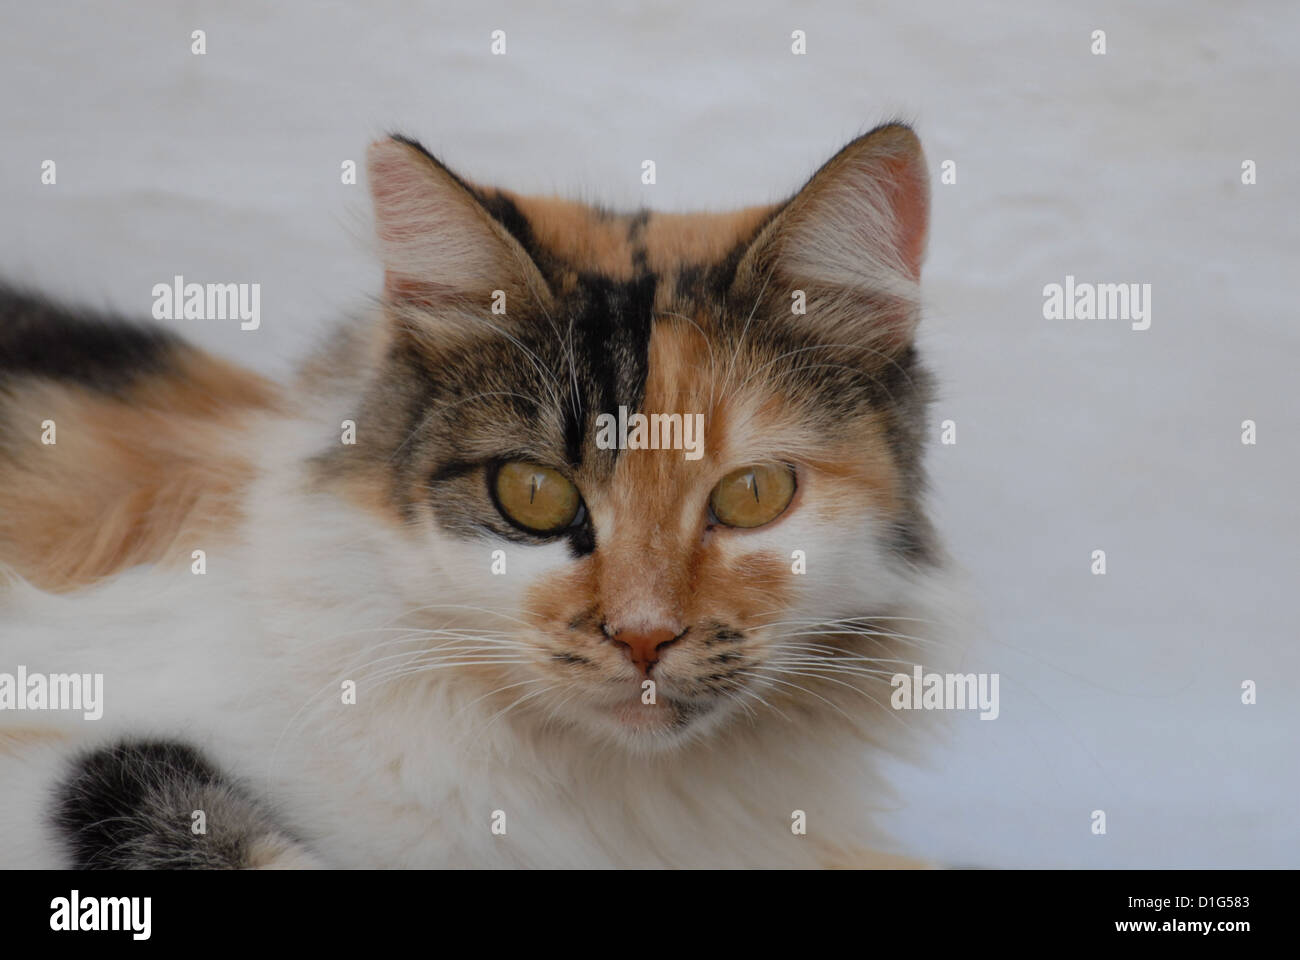 Tortie Tabby and White, portrait, Greece, Dodecanese Island, Non-pedigree, felis silvestris forma catus, domesticus Stock Photo